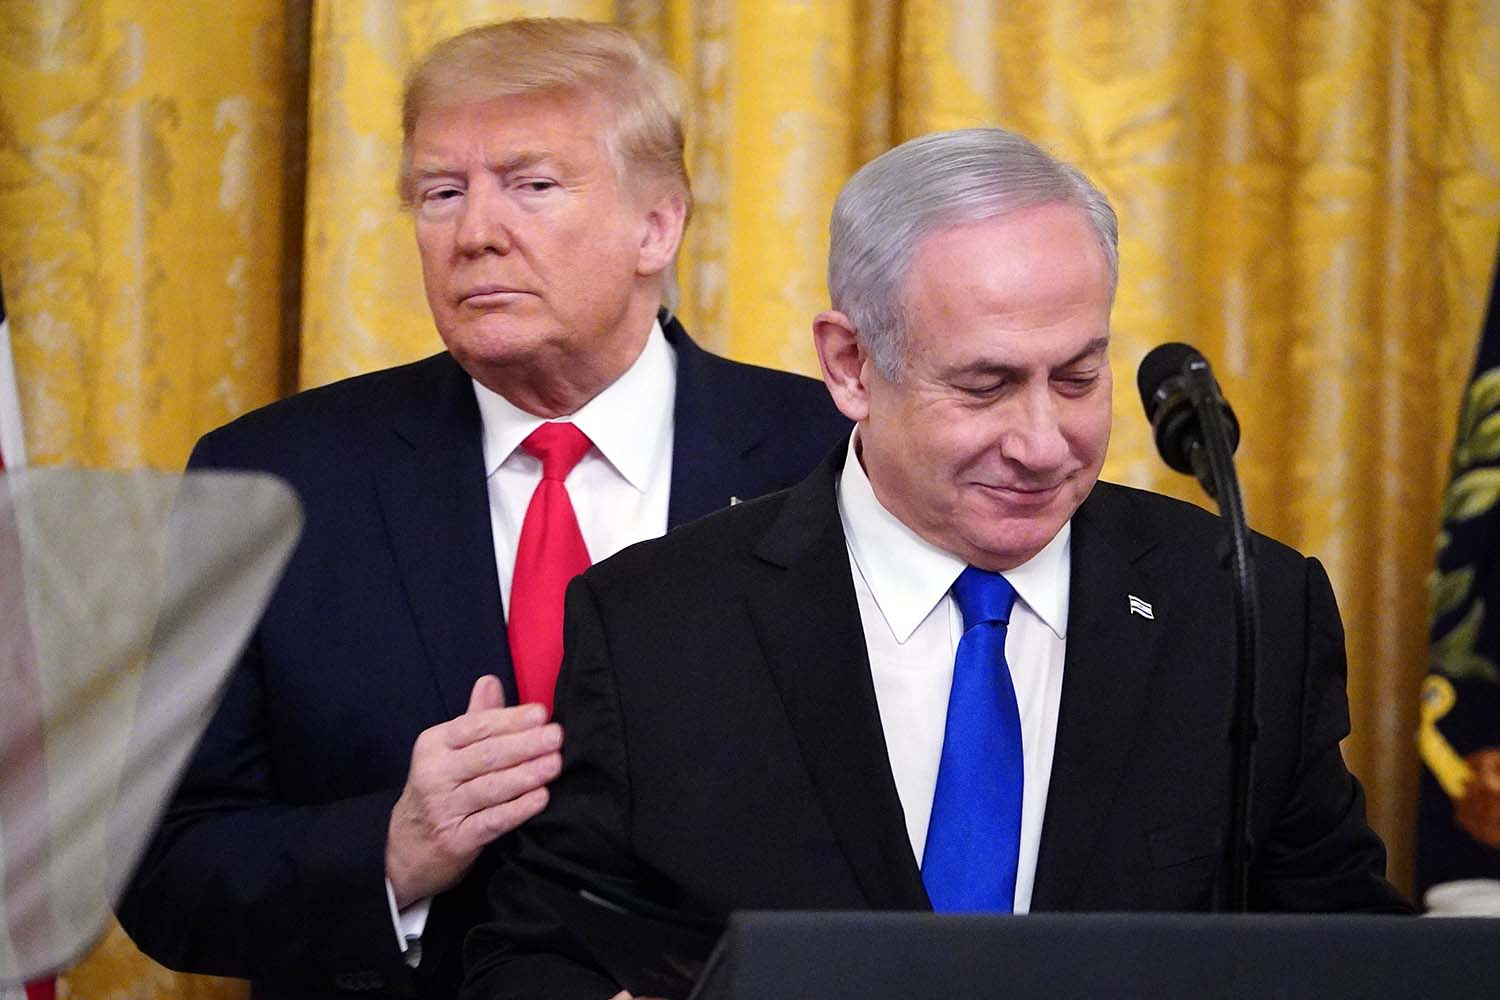 U.S. President Donald Trump and Israeli Prime Minister Benjamin Netanyahu annouce Trump's Middle East peace plan at the White House in Washington on Jan. 28. MANDEL NGAN/AFP via Getty Images